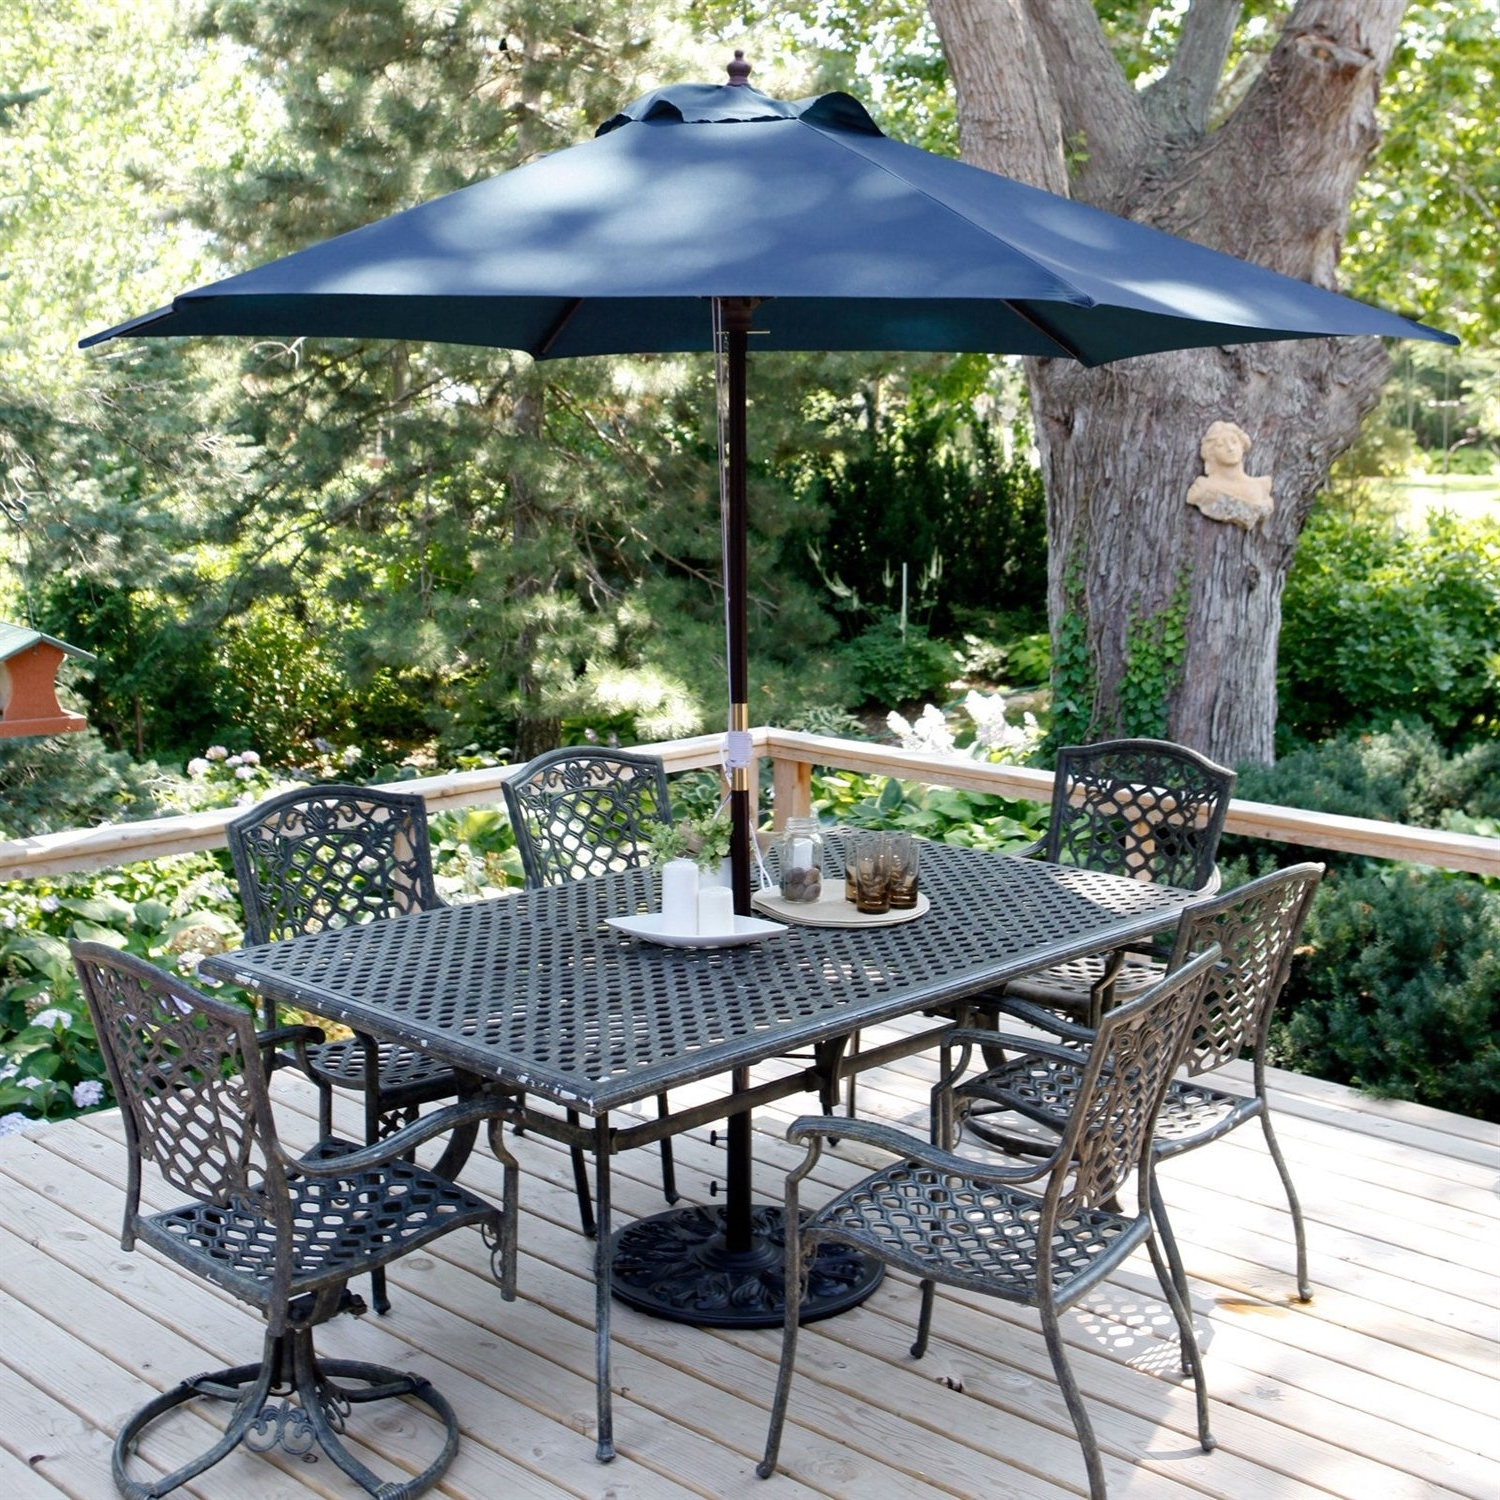 Blue Patio Umbrellas Throughout Widely Used Navy Blue 11 Ft Patio Umbrella With Antique Bronze Pole And Base (View 15 of 20)